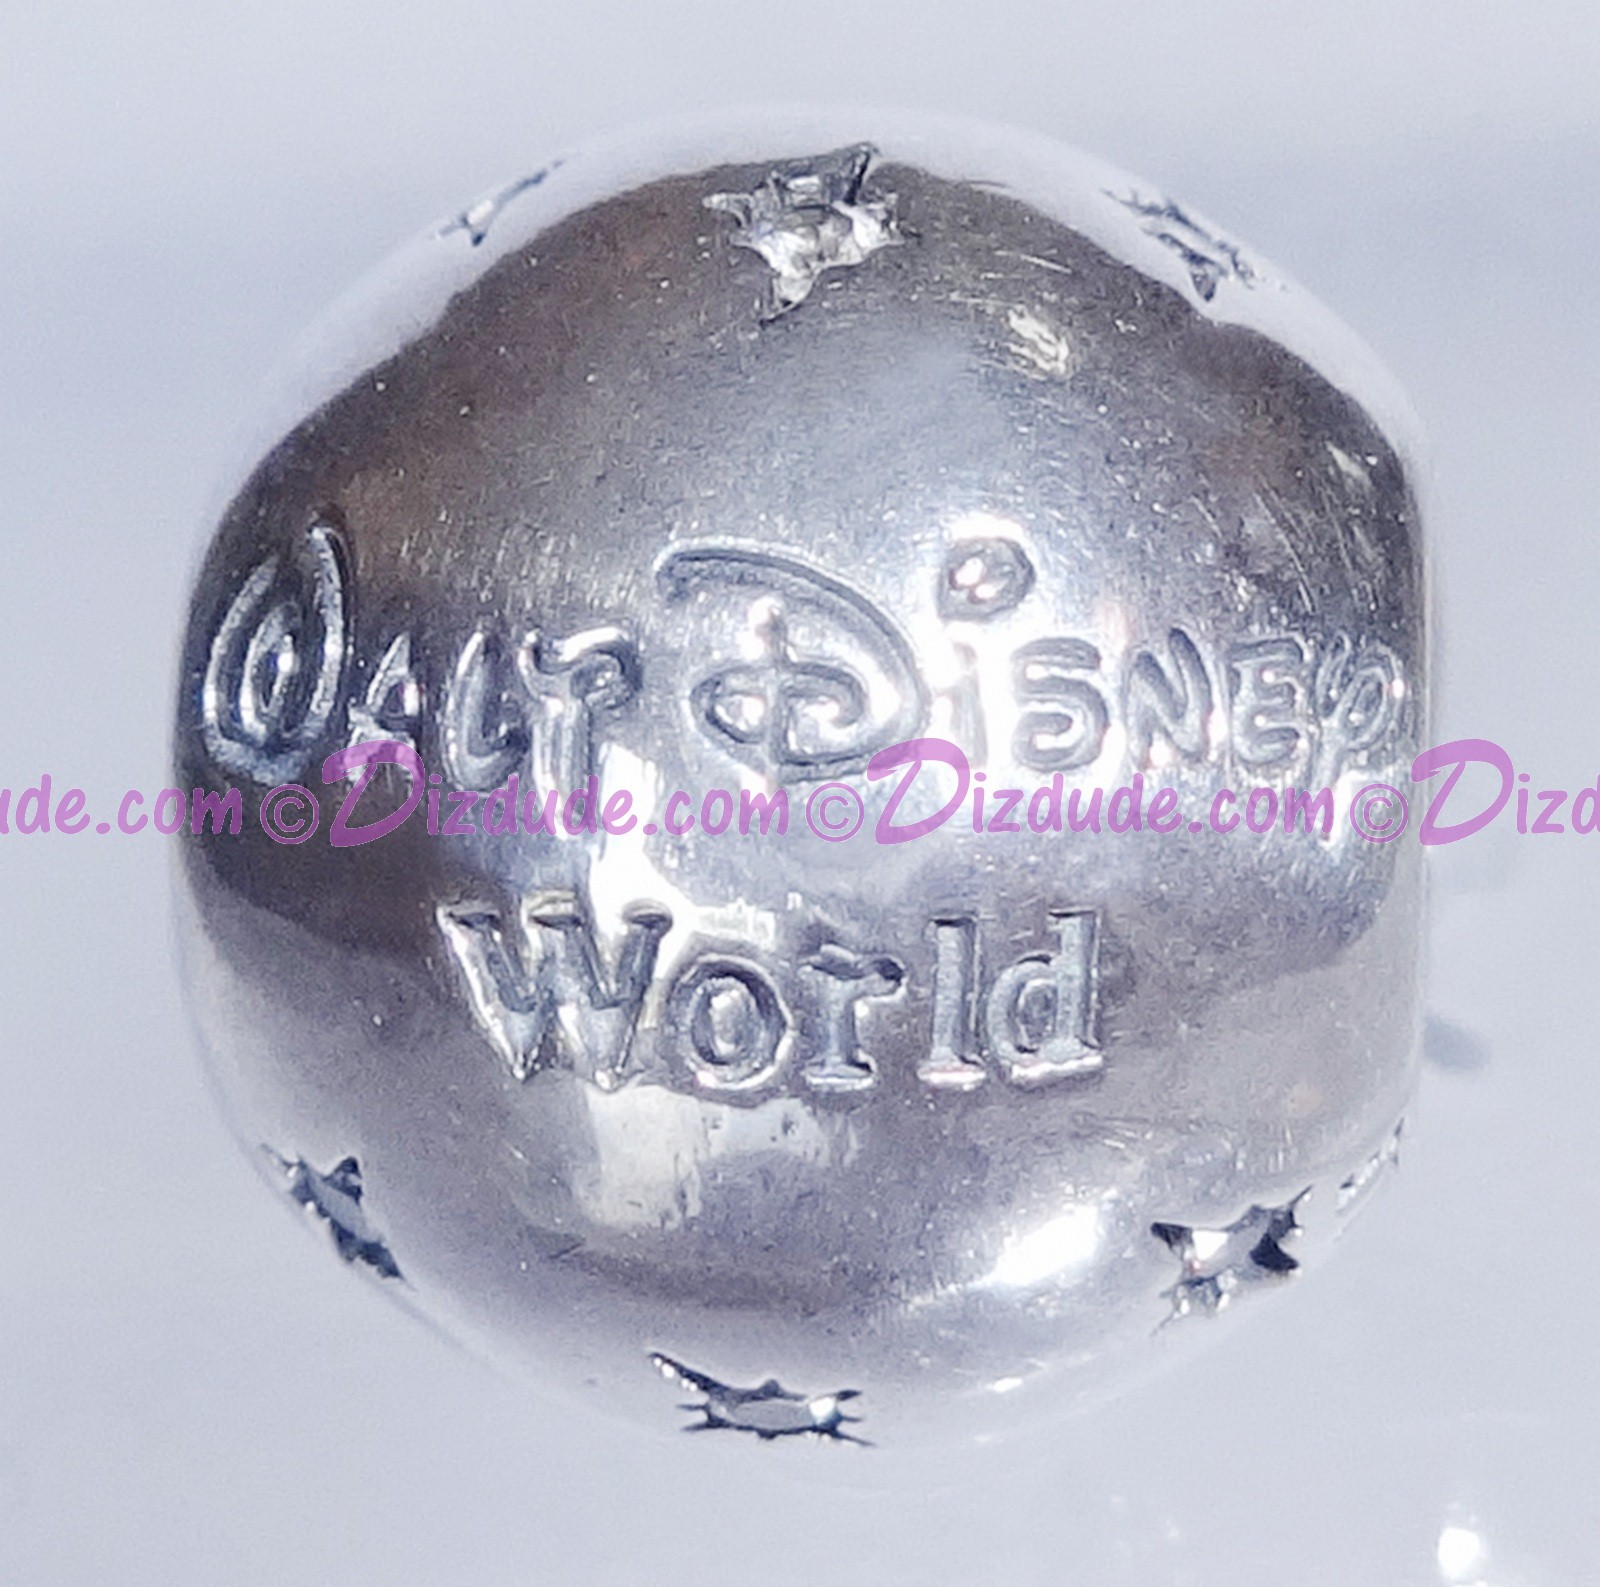 "(SOLD OUT) Disney Pandora ""Walt Disney World"" Sterling Silver Charm with Cubic Zirconias - Disney World Parks Exclusive"